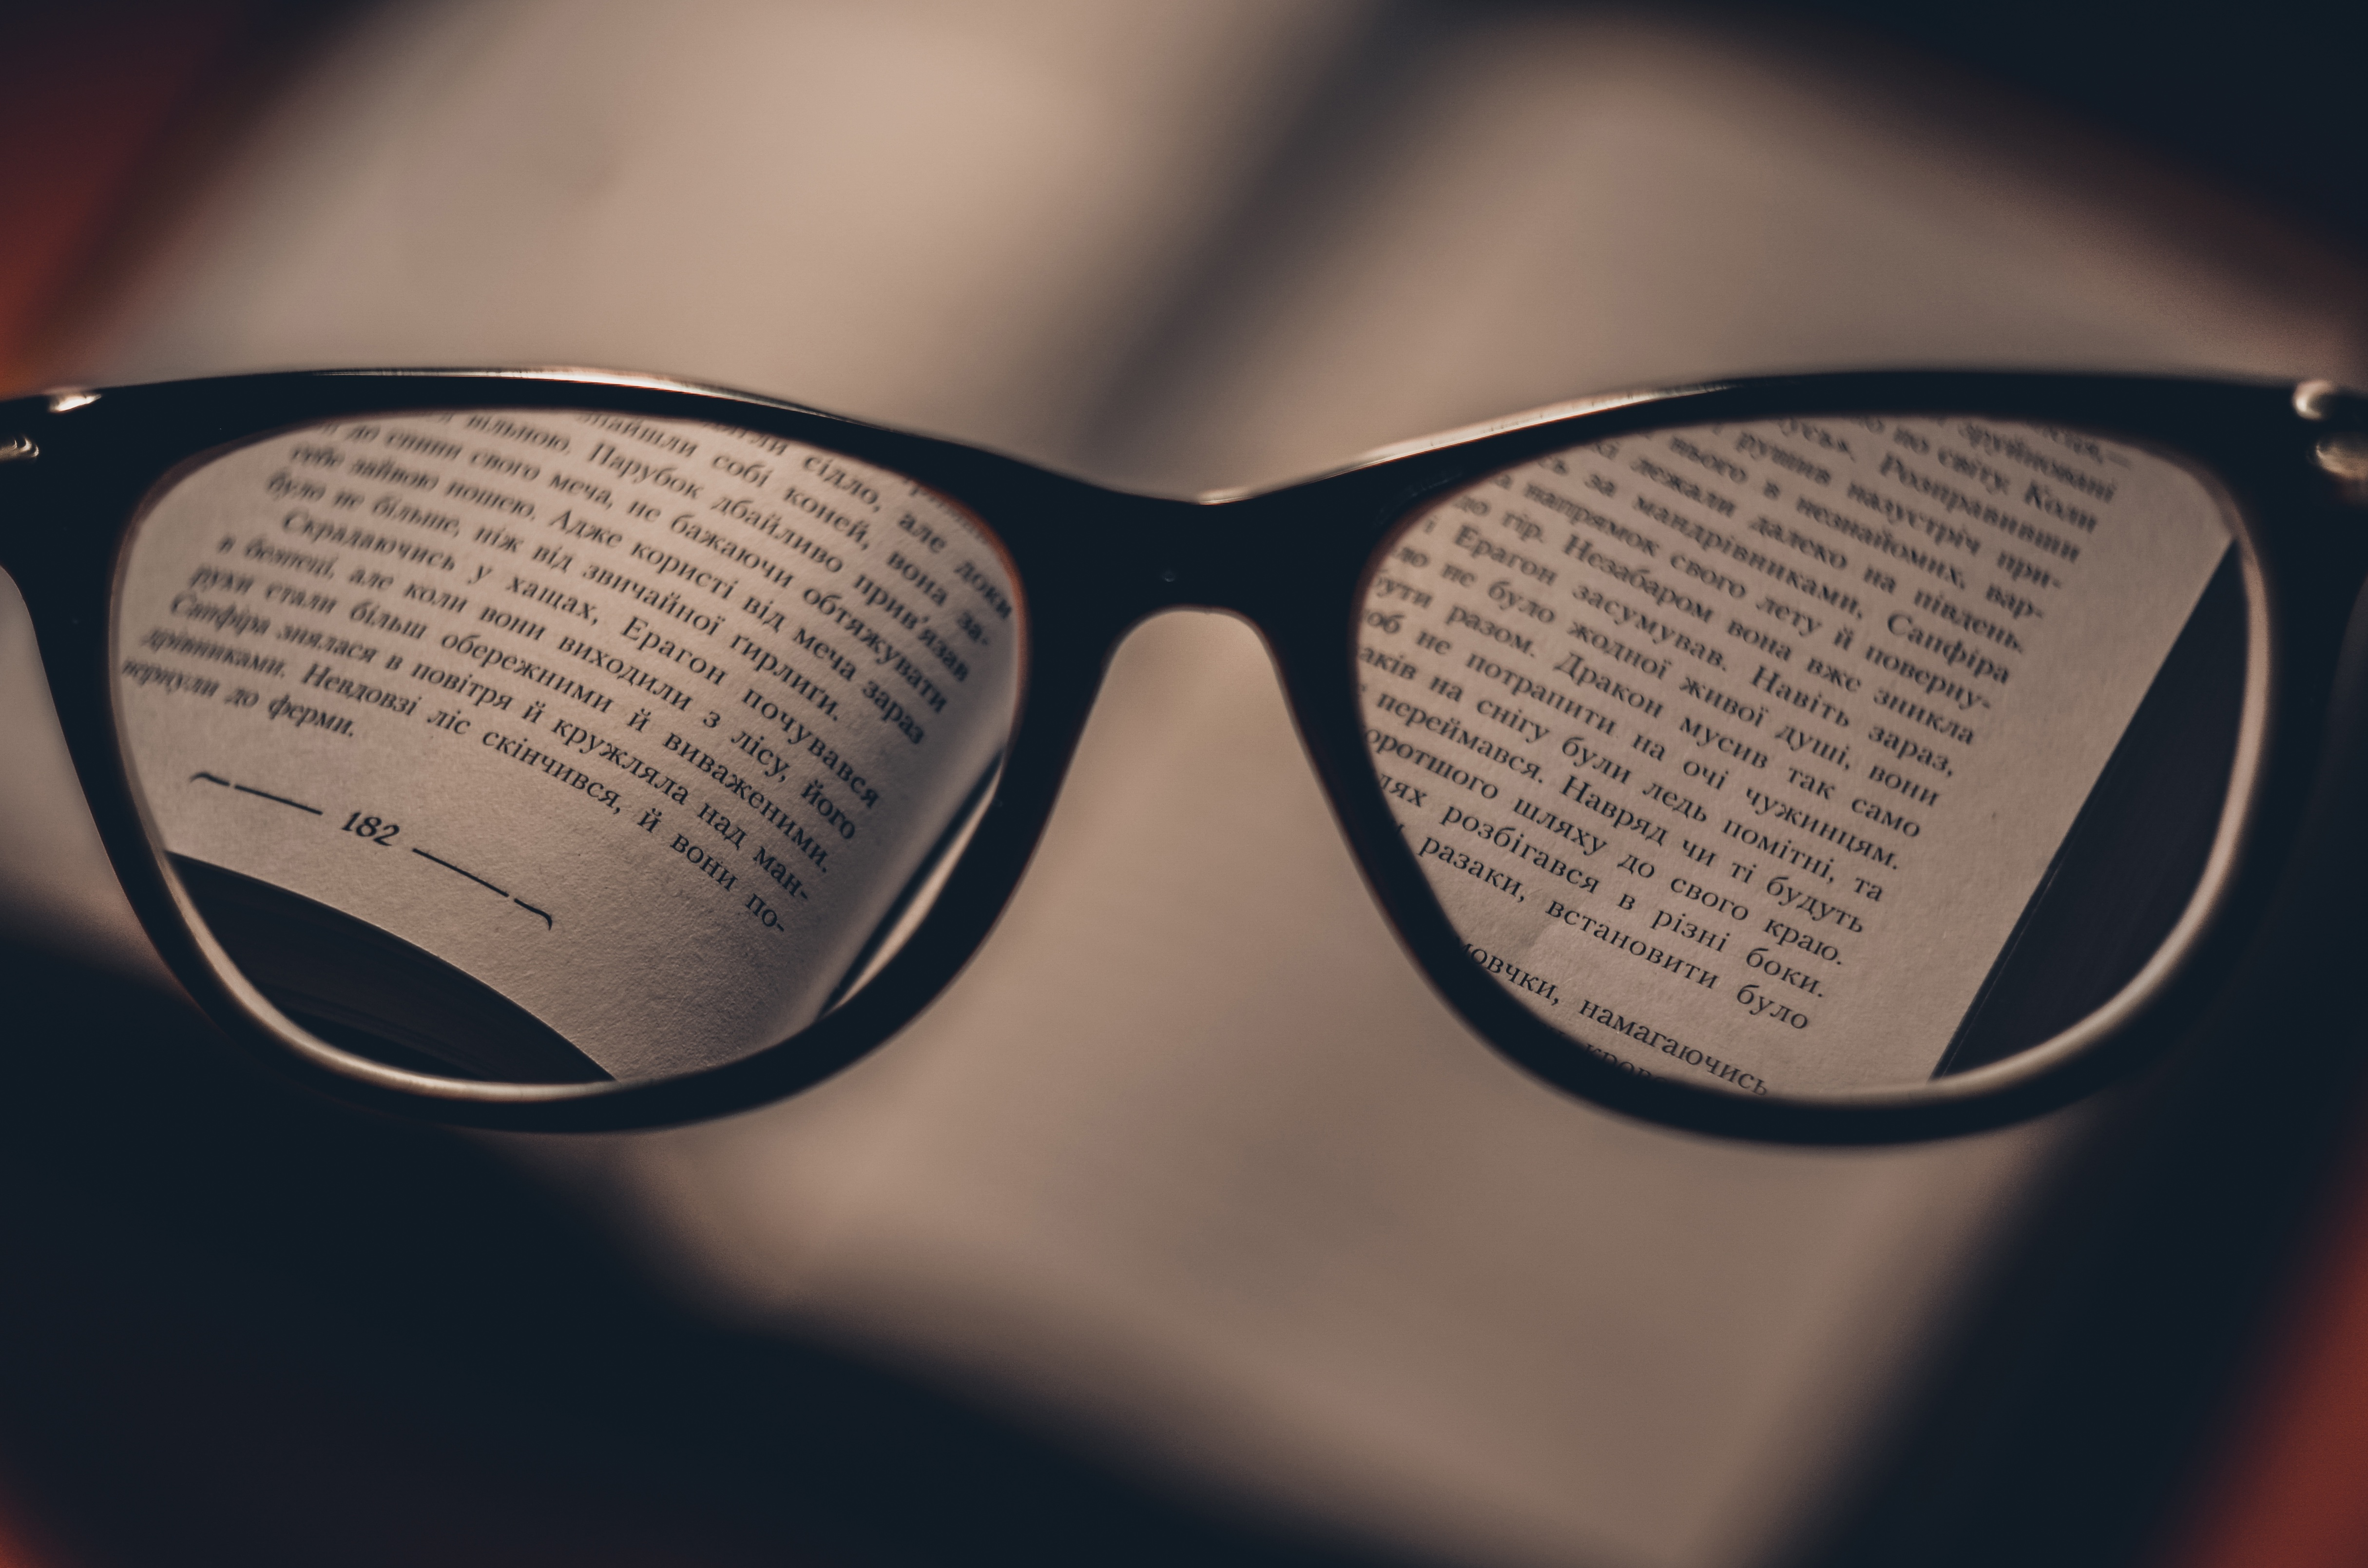 Clarify of multilingual through glasses